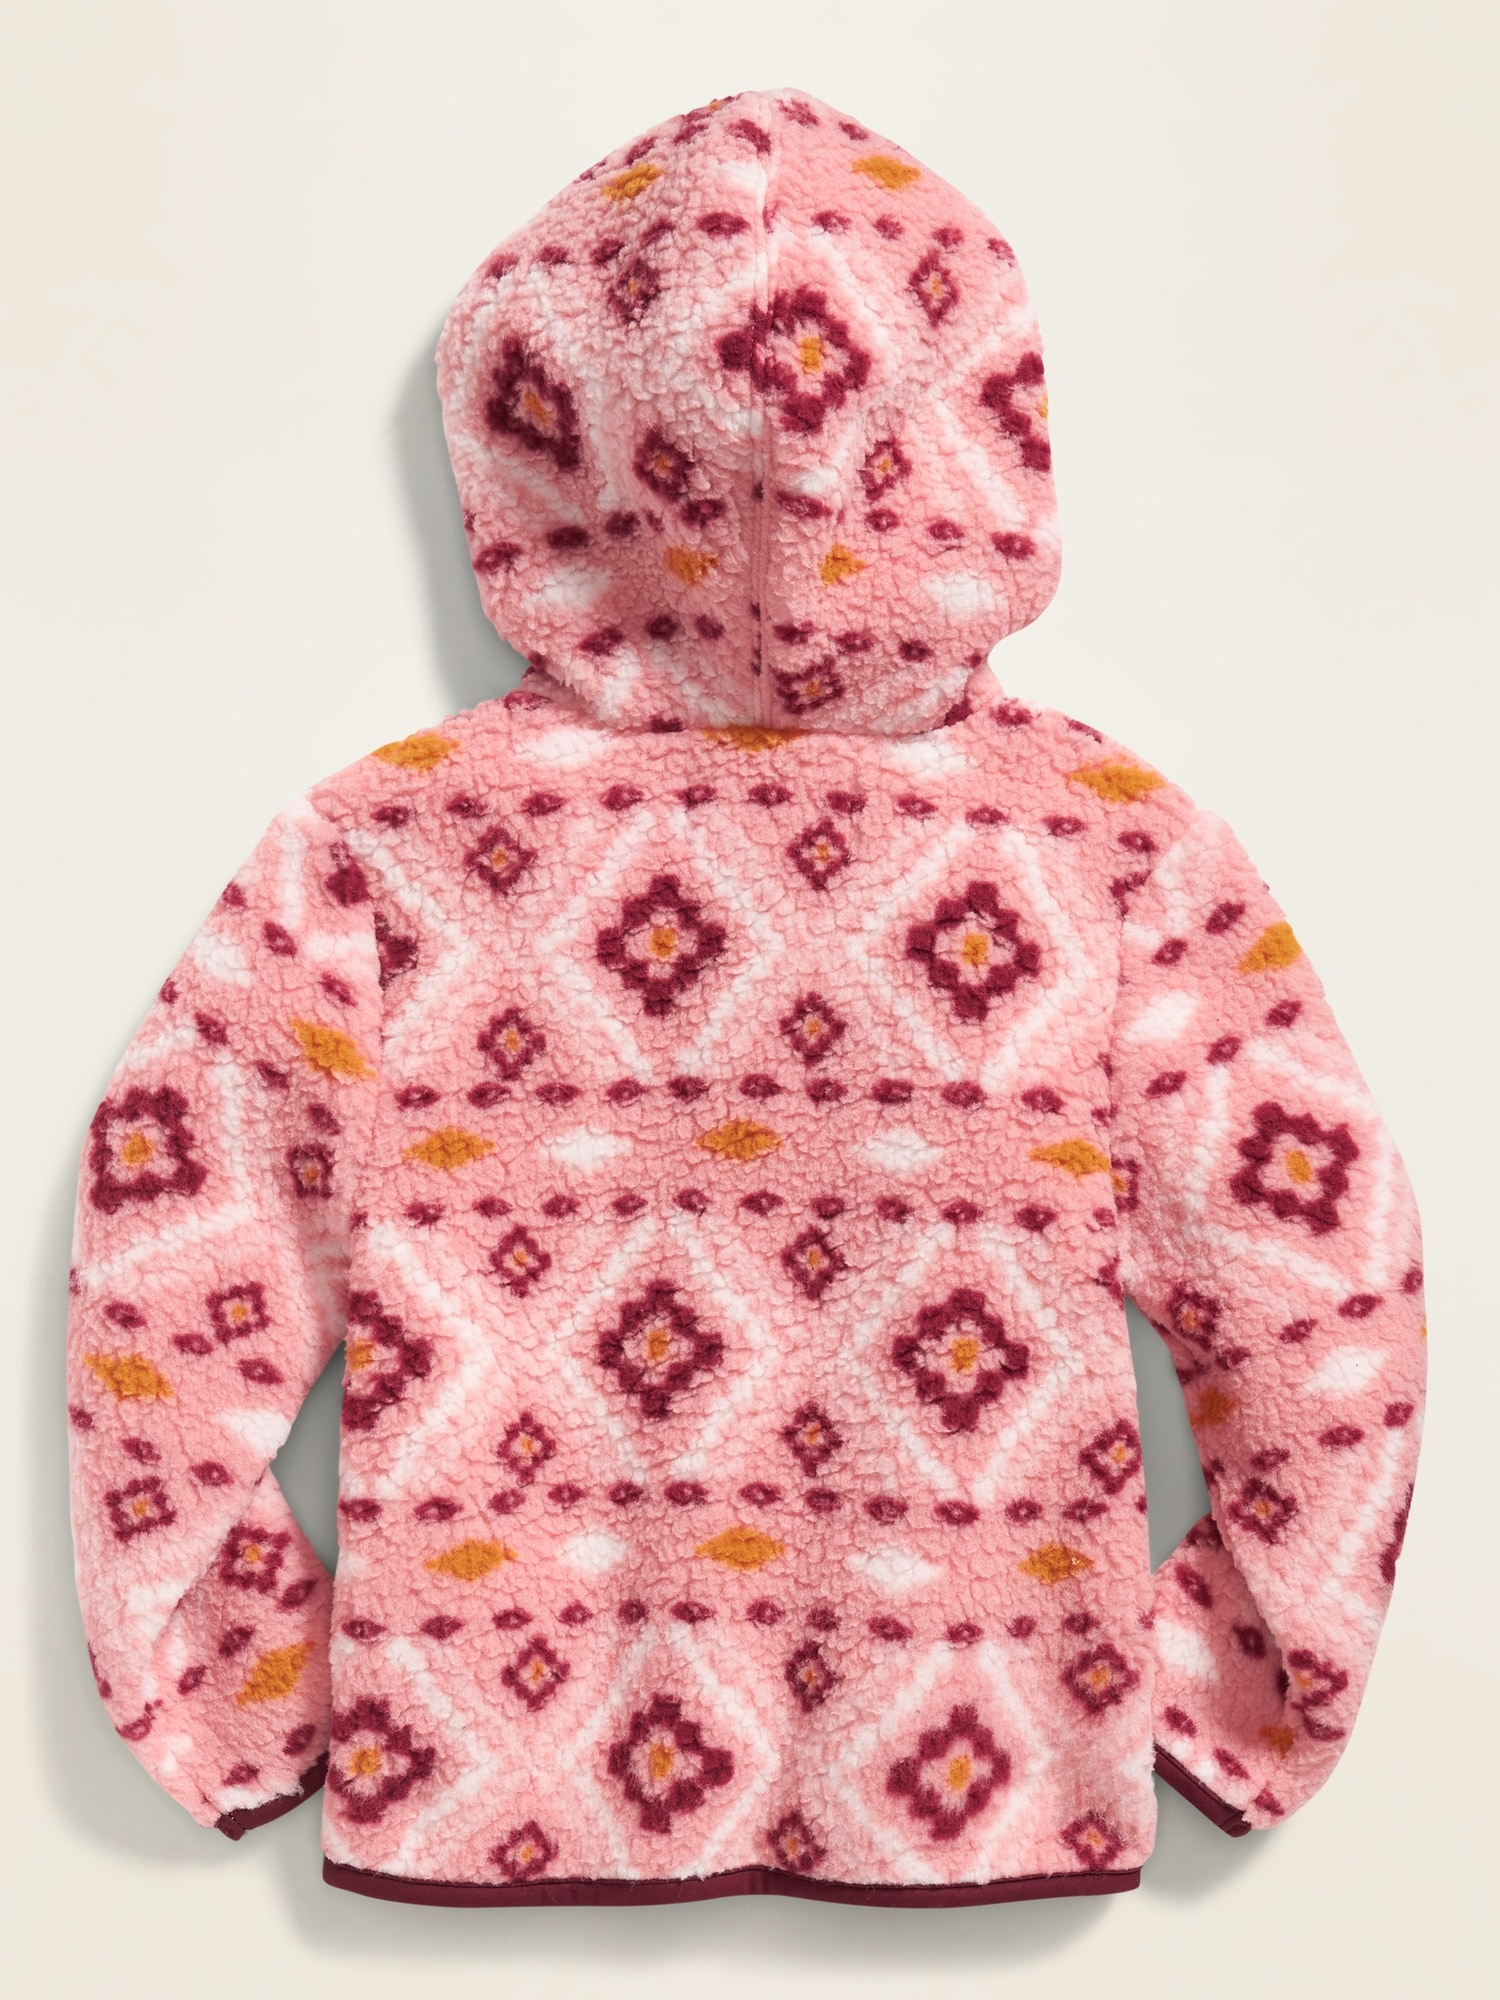 NEW GAP SHERPA RED LOGO HOODIE SIZE 12-18-24M 2T 3T 4T 5T